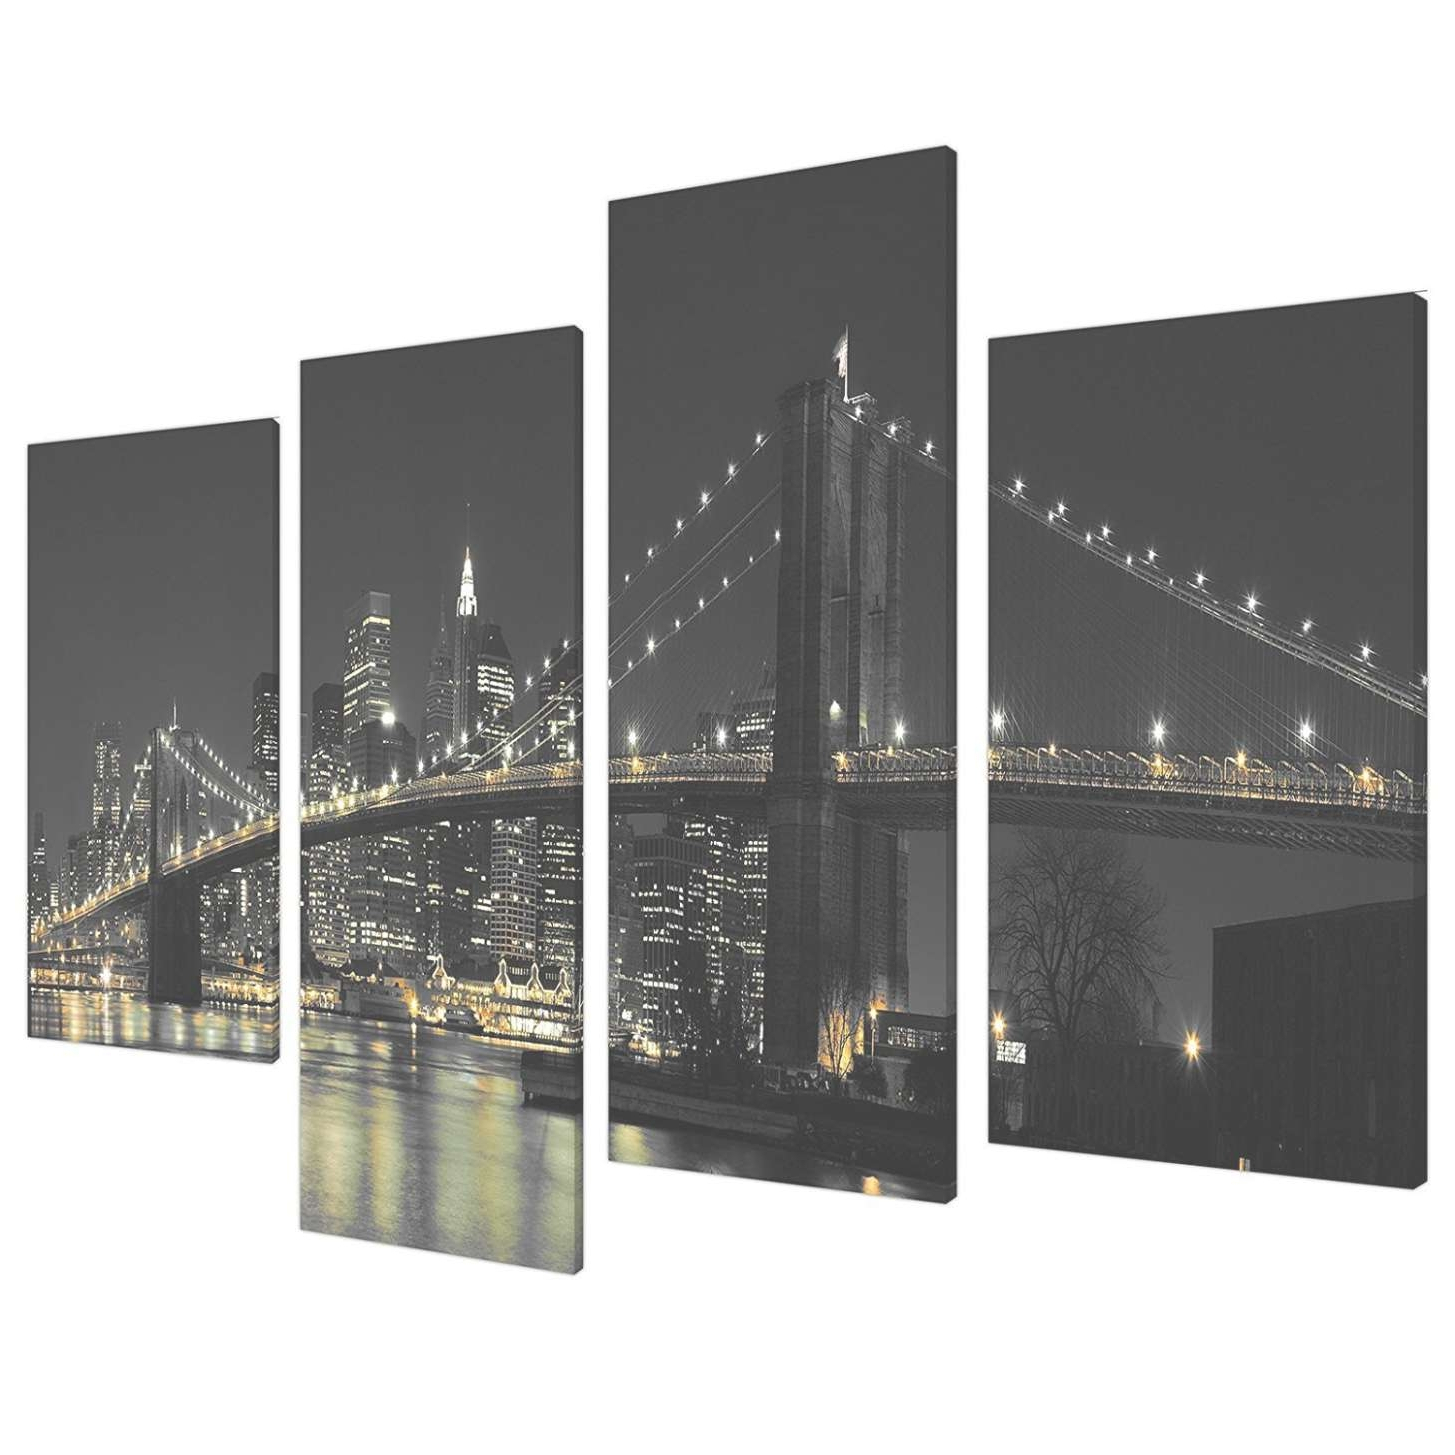 Wonderful World Wall Decor By Latitude Run With Widely Used New York City Wall Art Attractive 45 Ideas Of For (View 10 of 20)